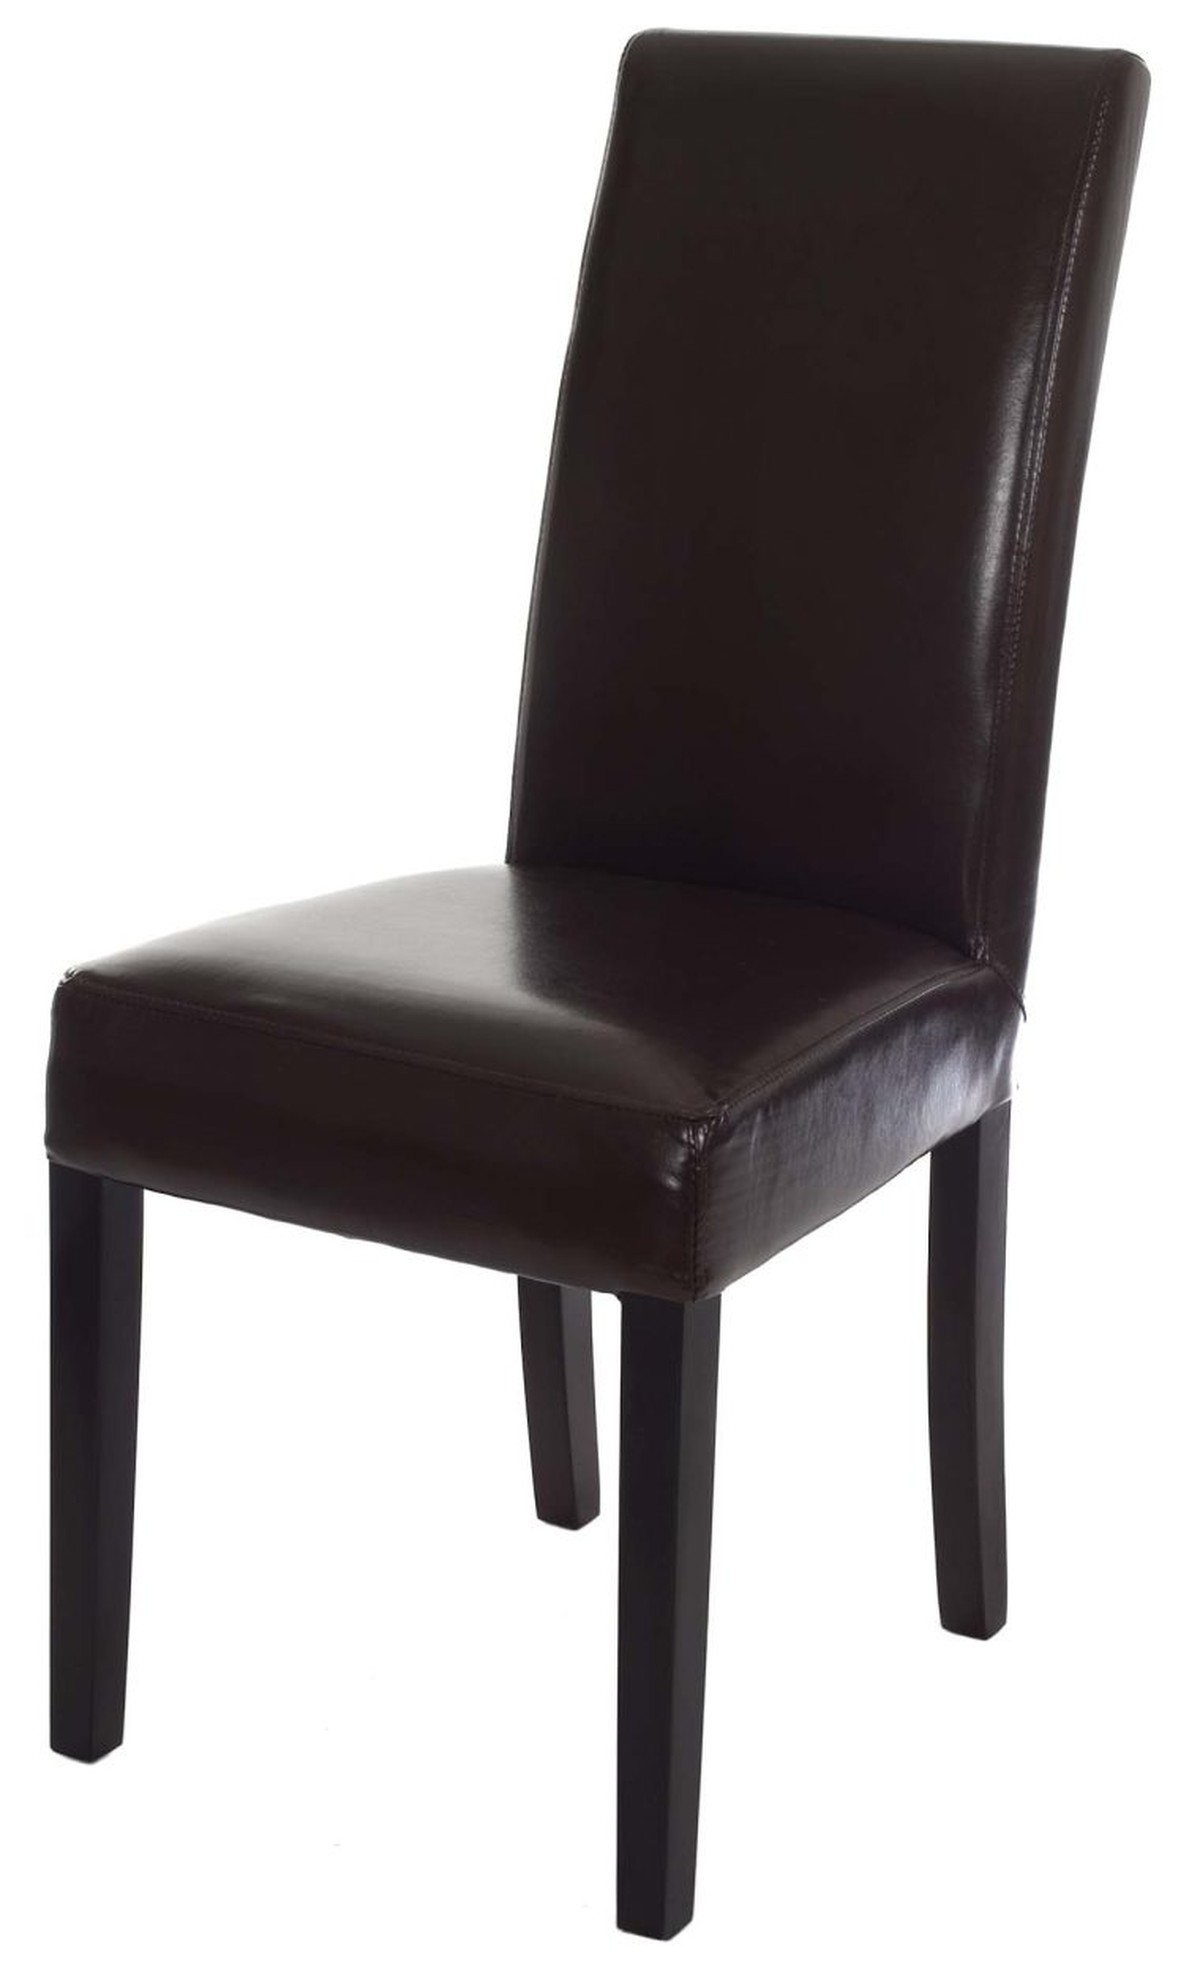 Curlew secondhand marquees fiesta furniture for Faux leather dining chairs